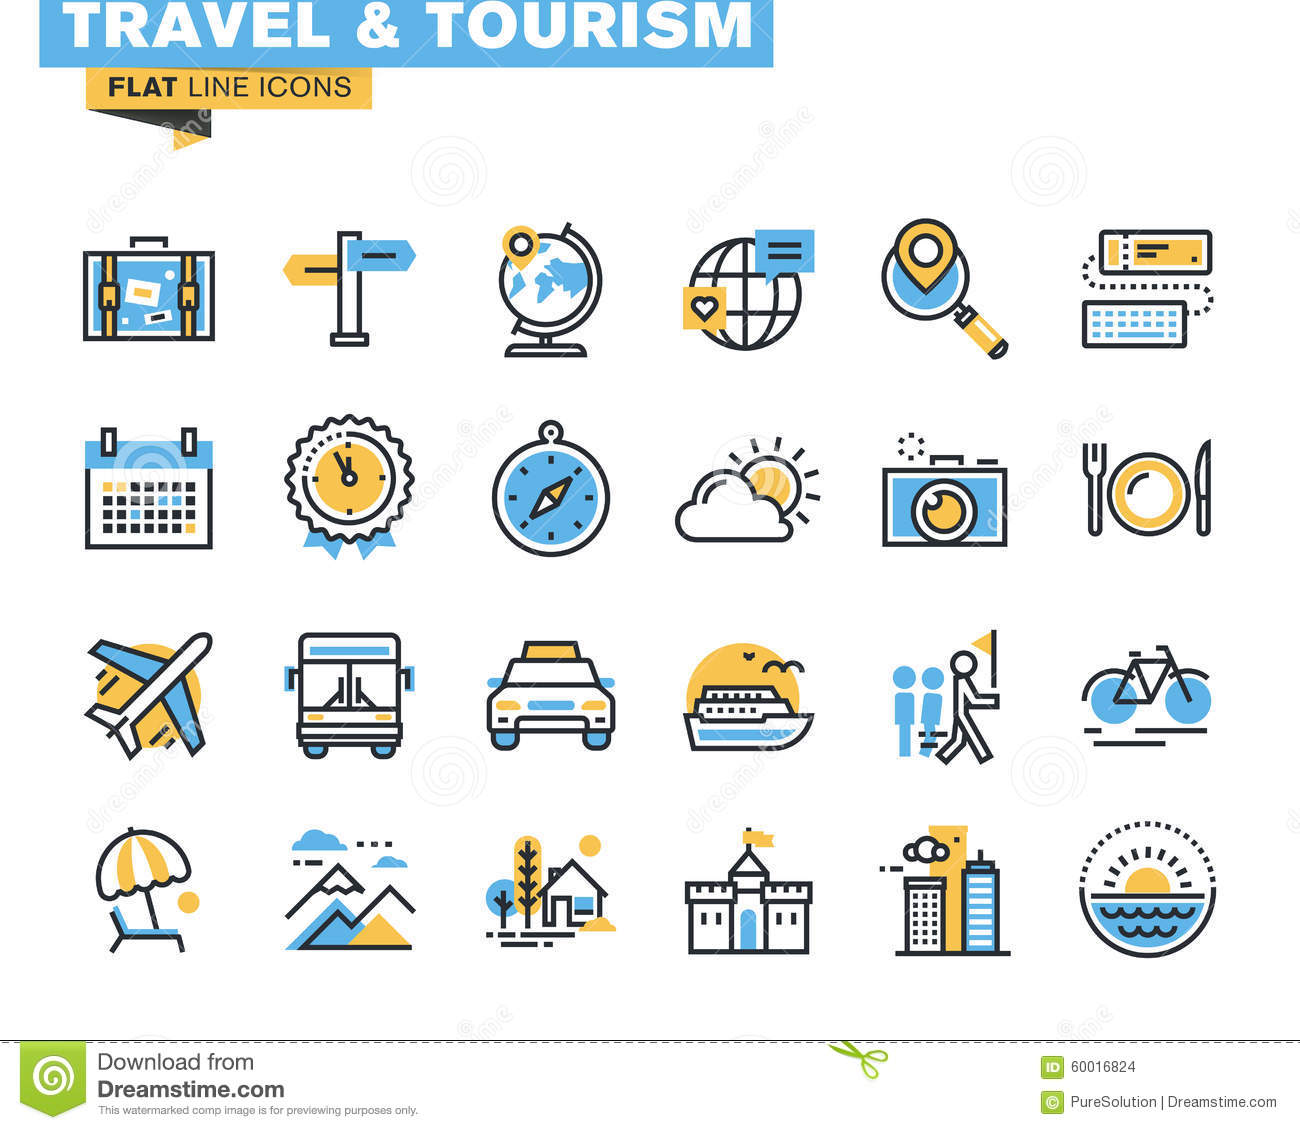 Flat line icons set of travel and tourism